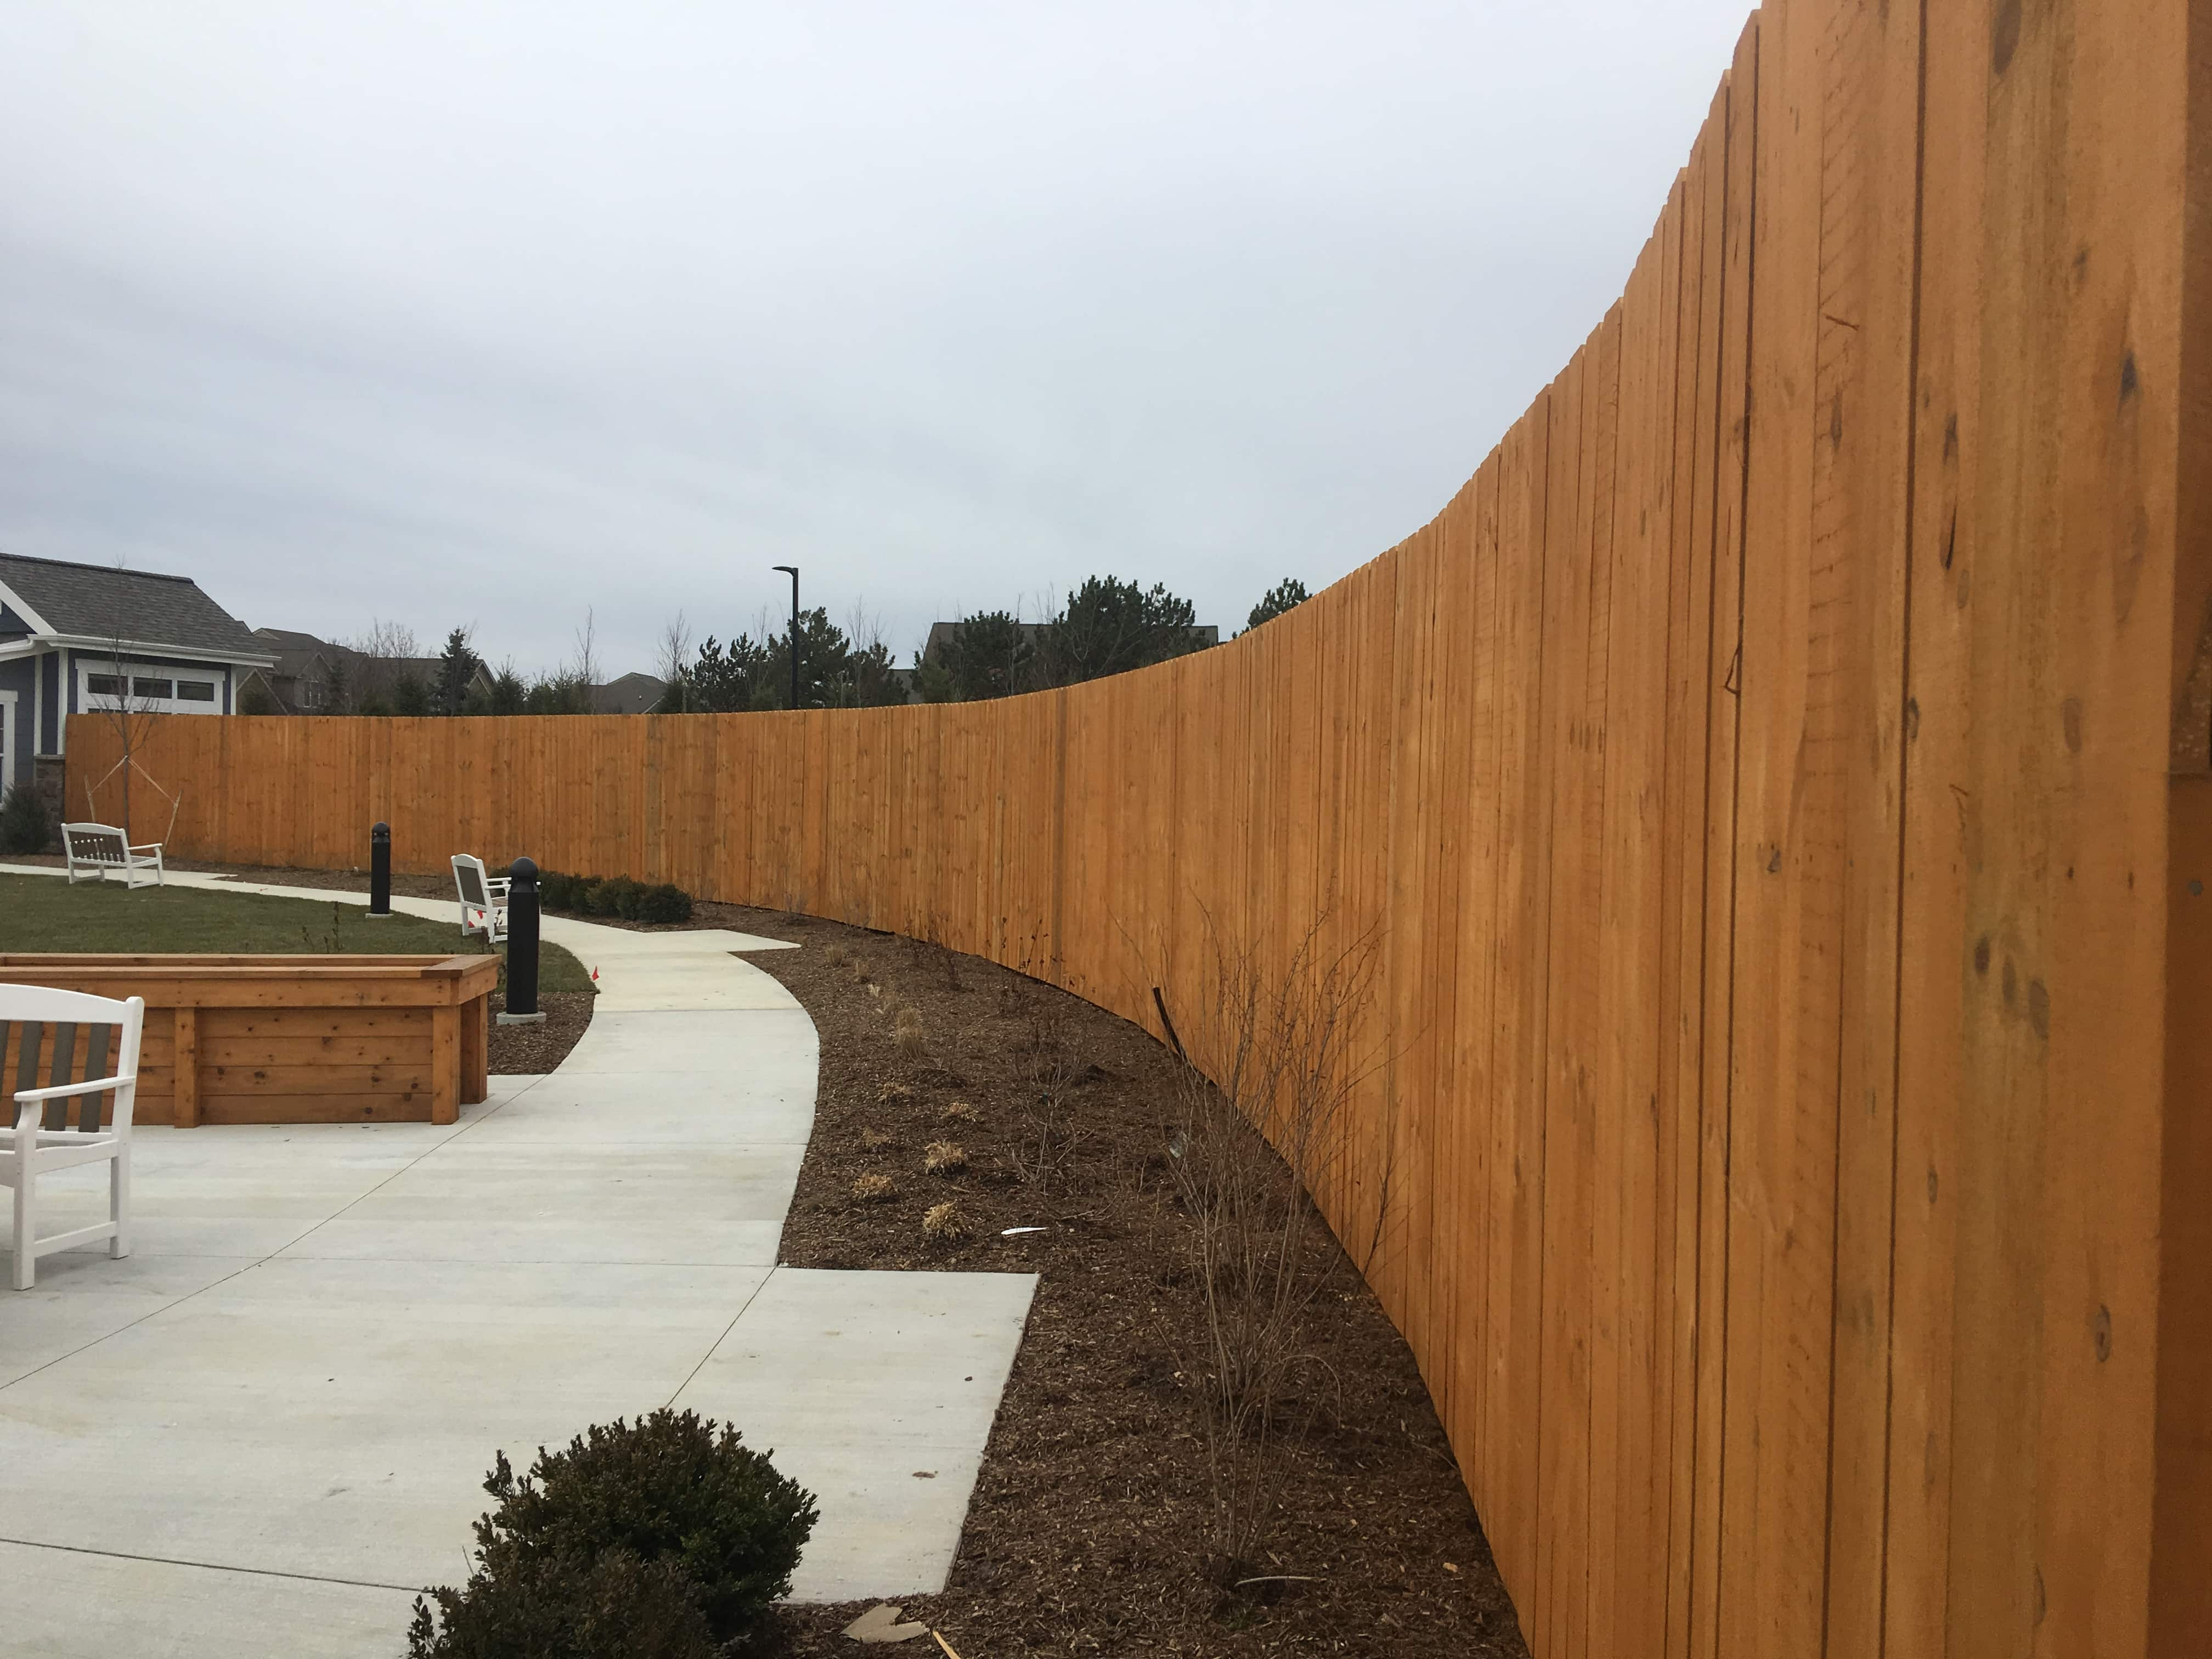 Image of commercial wood privacy fencing in Metro Detroit, Michigan